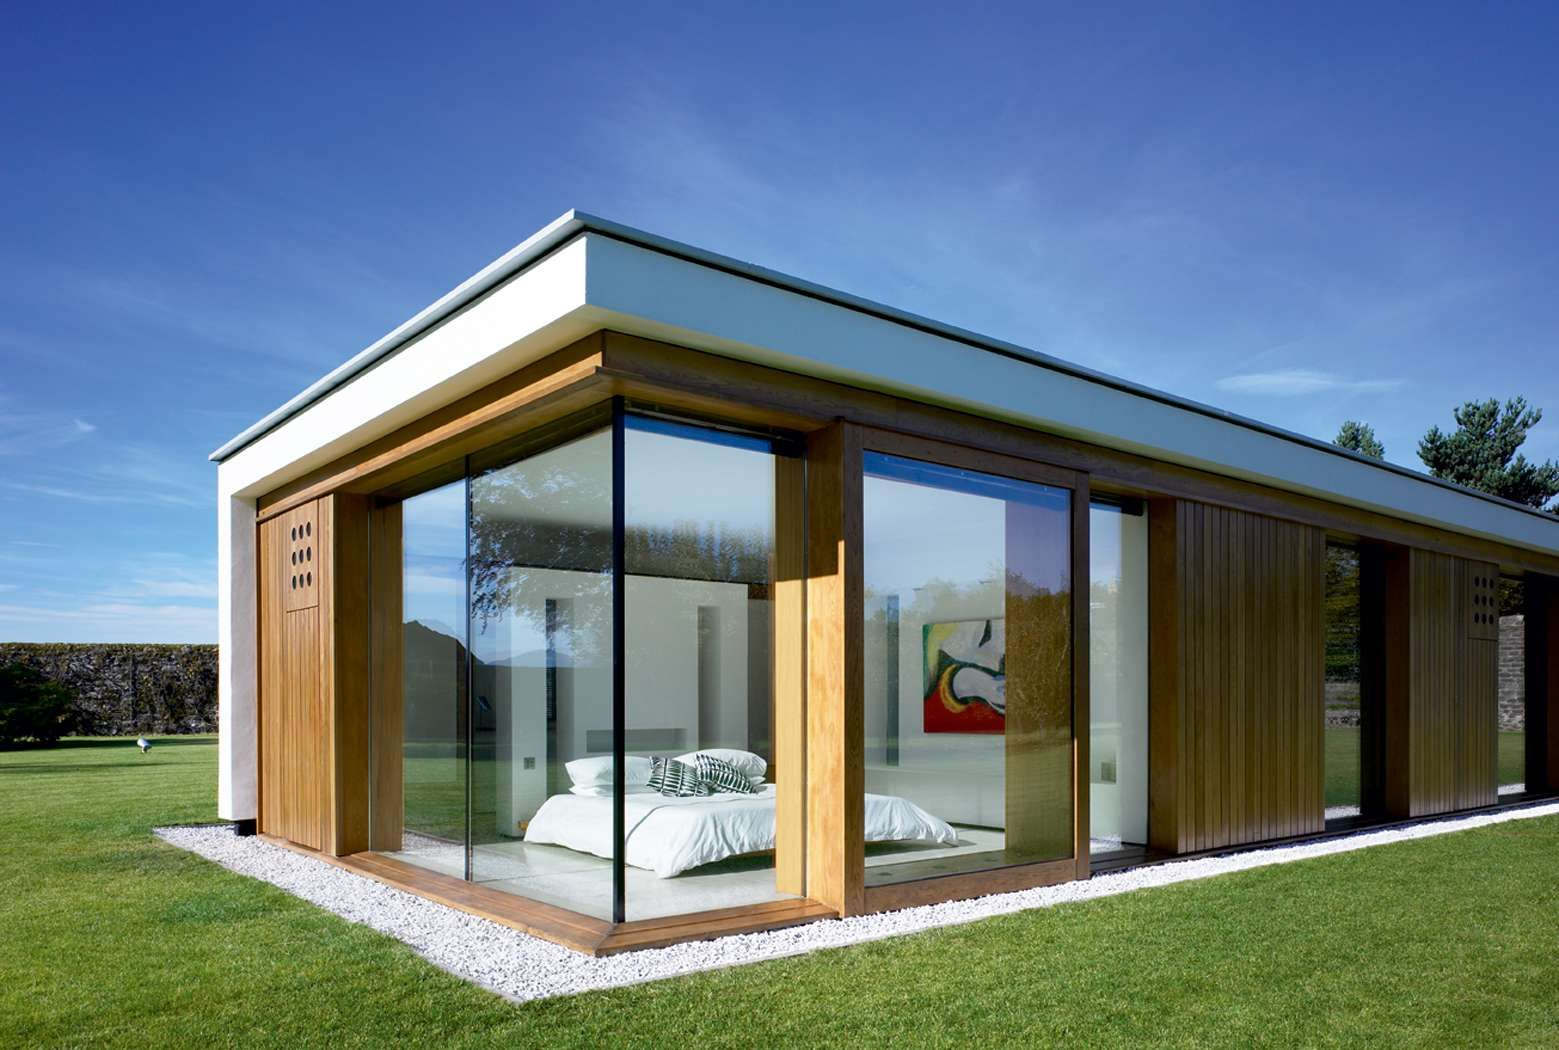 image result for contemporary flat roof house wood cladding white render